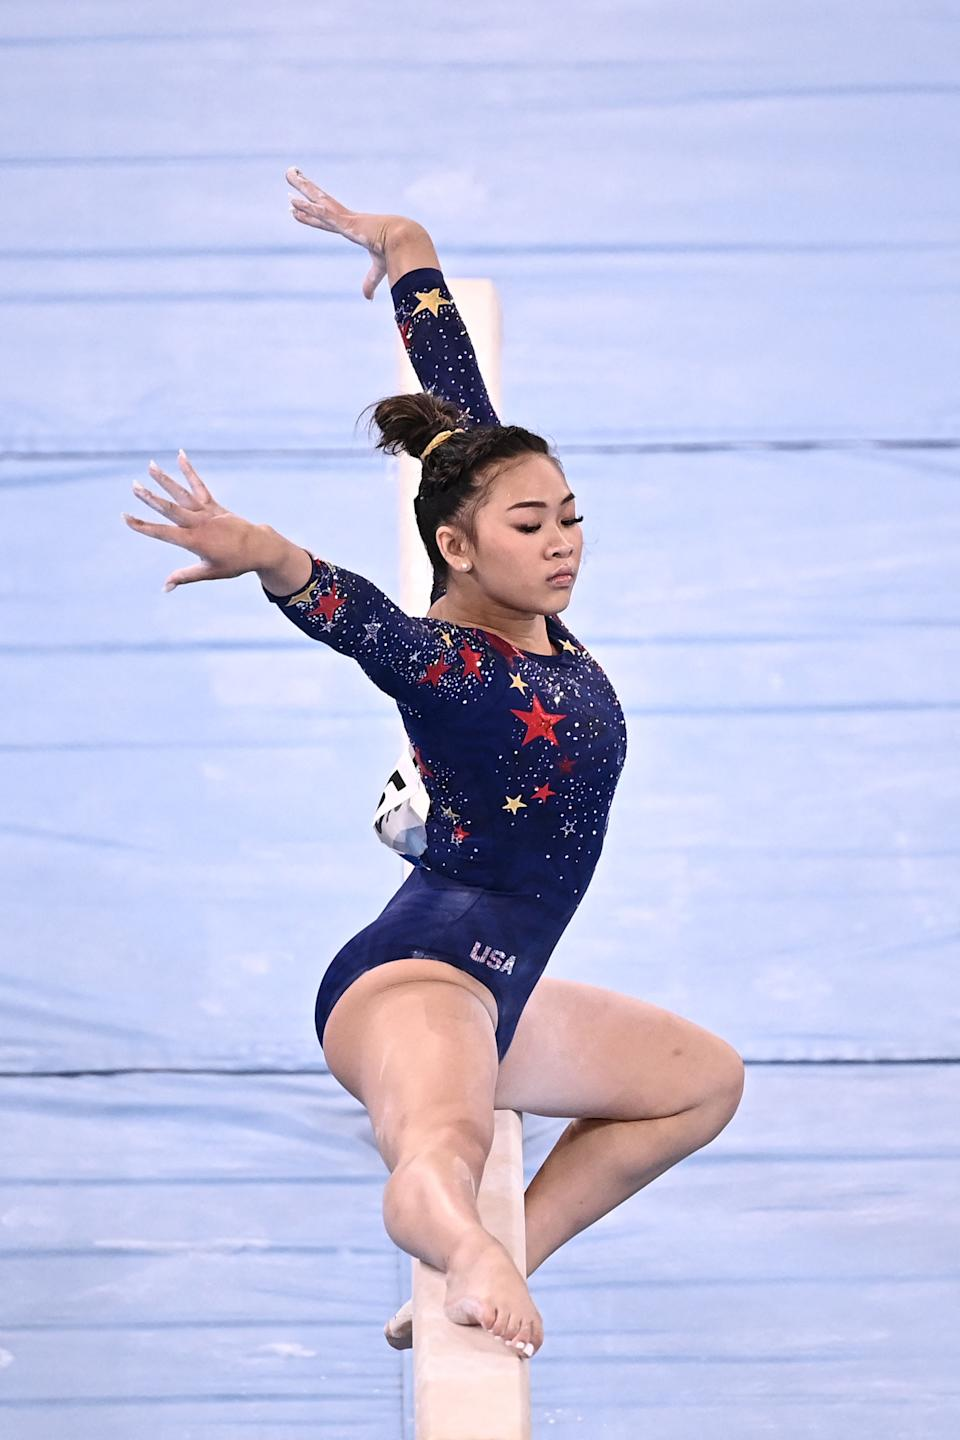 <p>USA's Sunisa Lee competes in the artistic gymnastics balance beam event of the women's qualification during the Tokyo 2020 Olympic Games at the Ariake Gymnastics Centre in Tokyo on July 25, 2021. (Photo by Lionel BONAVENTURE / AFP) (Photo by LIONEL BONAVENTURE/AFP via Getty Images)</p>